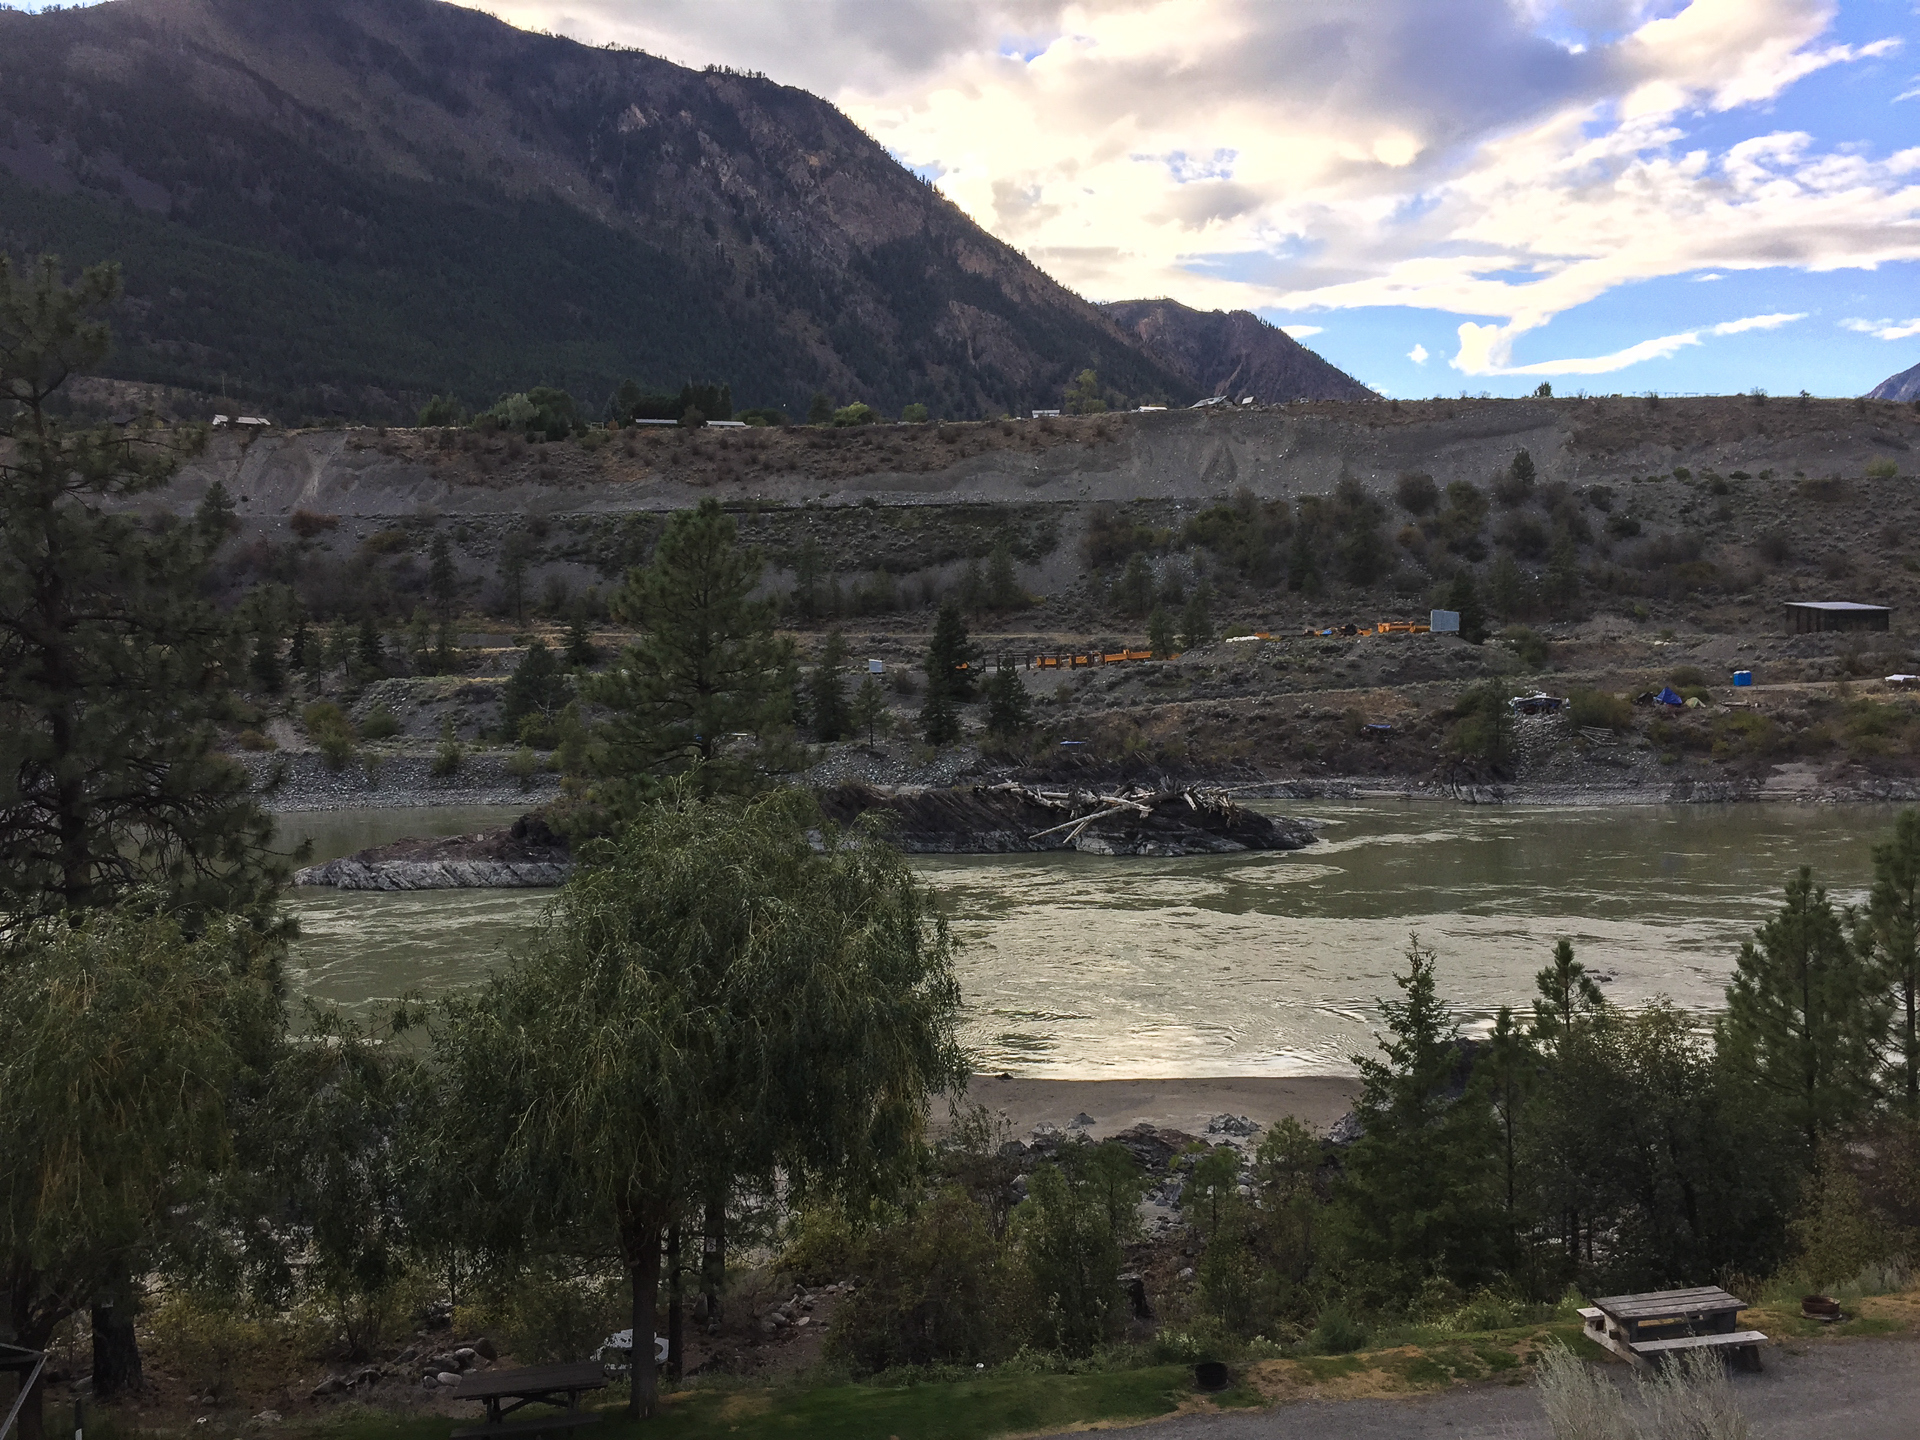 The view of the Fraser River from our campsite in Lillooet.